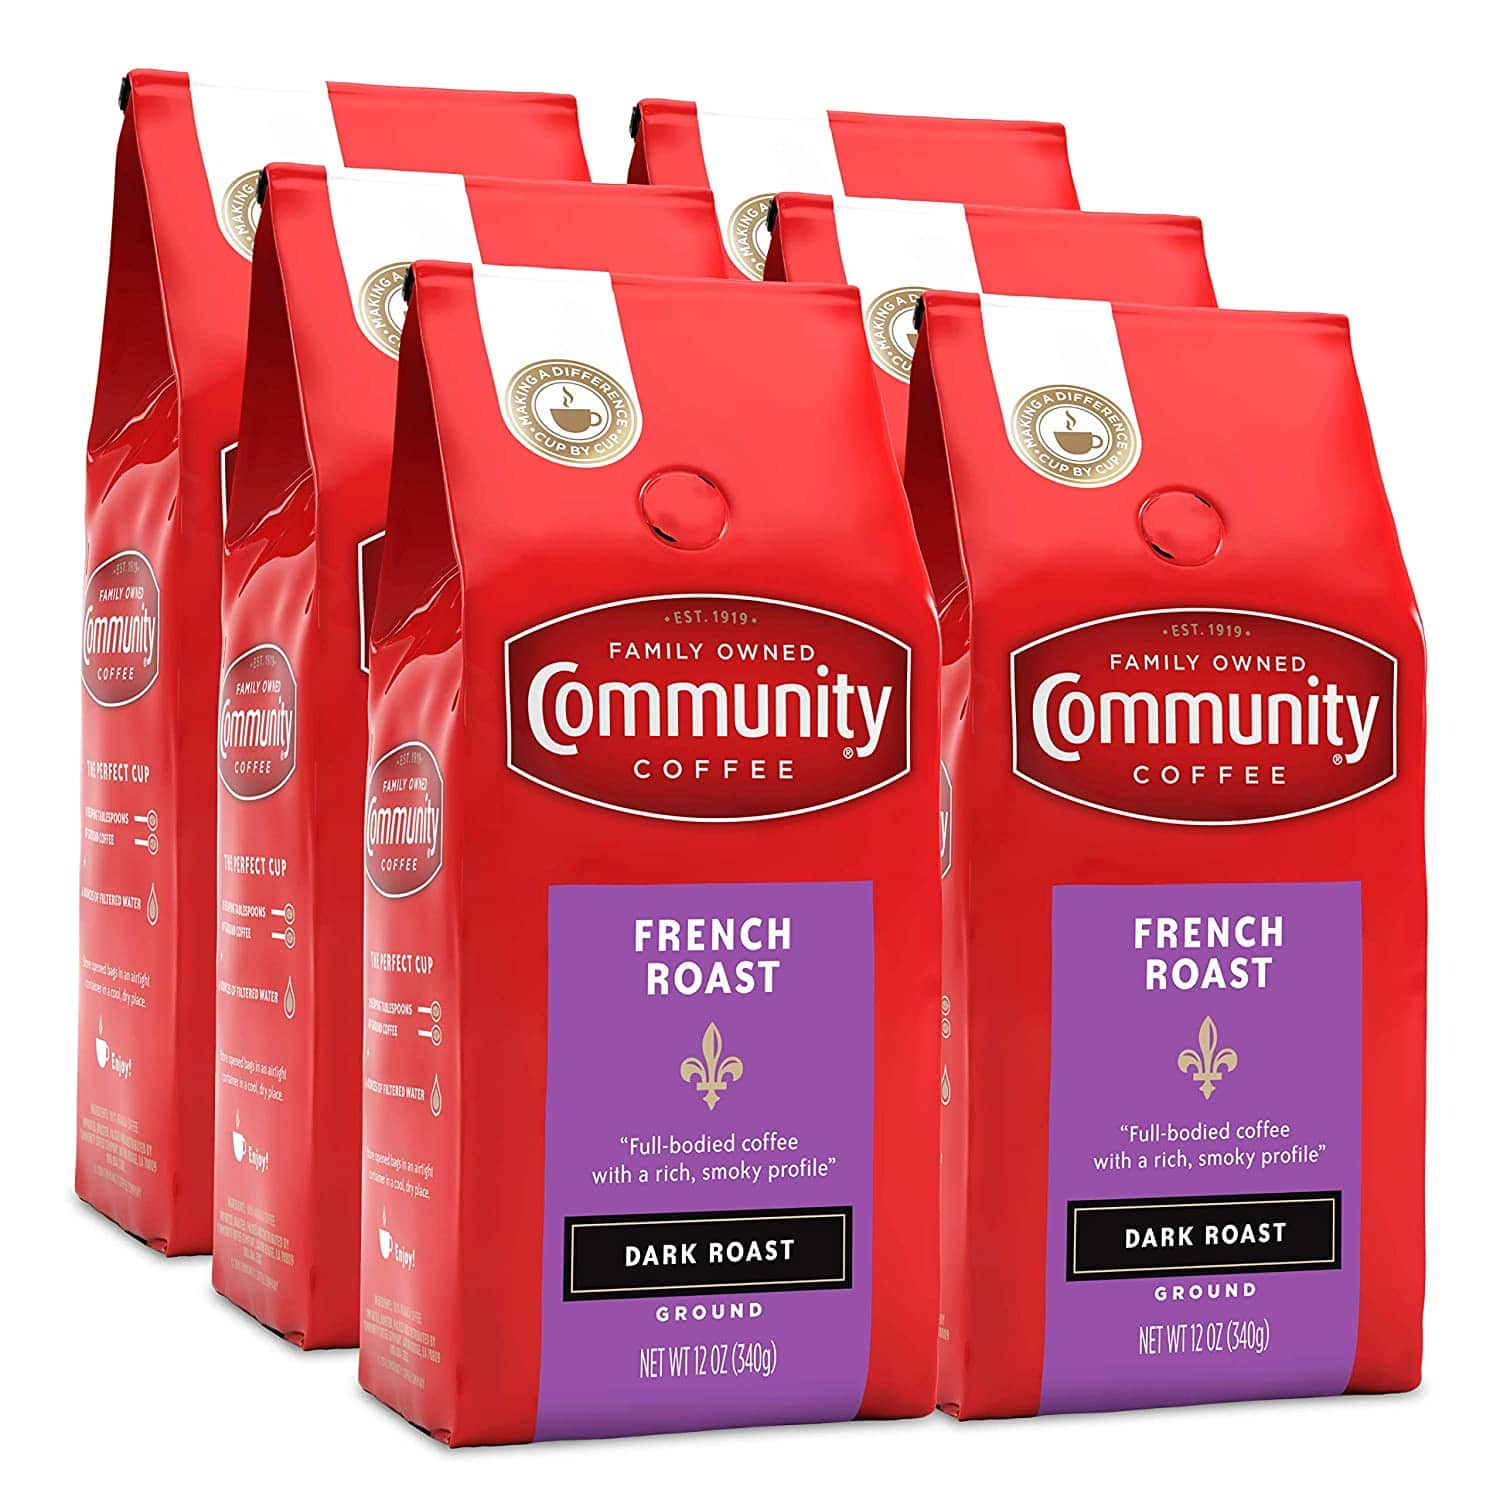 6-Pack 12-Oz Community Coffee French Roast Extra Dark Roast Ground Coffee $16.58 or Less w/ S&S + Free S&H w/ Prime or orders  $25+ ~Amazon